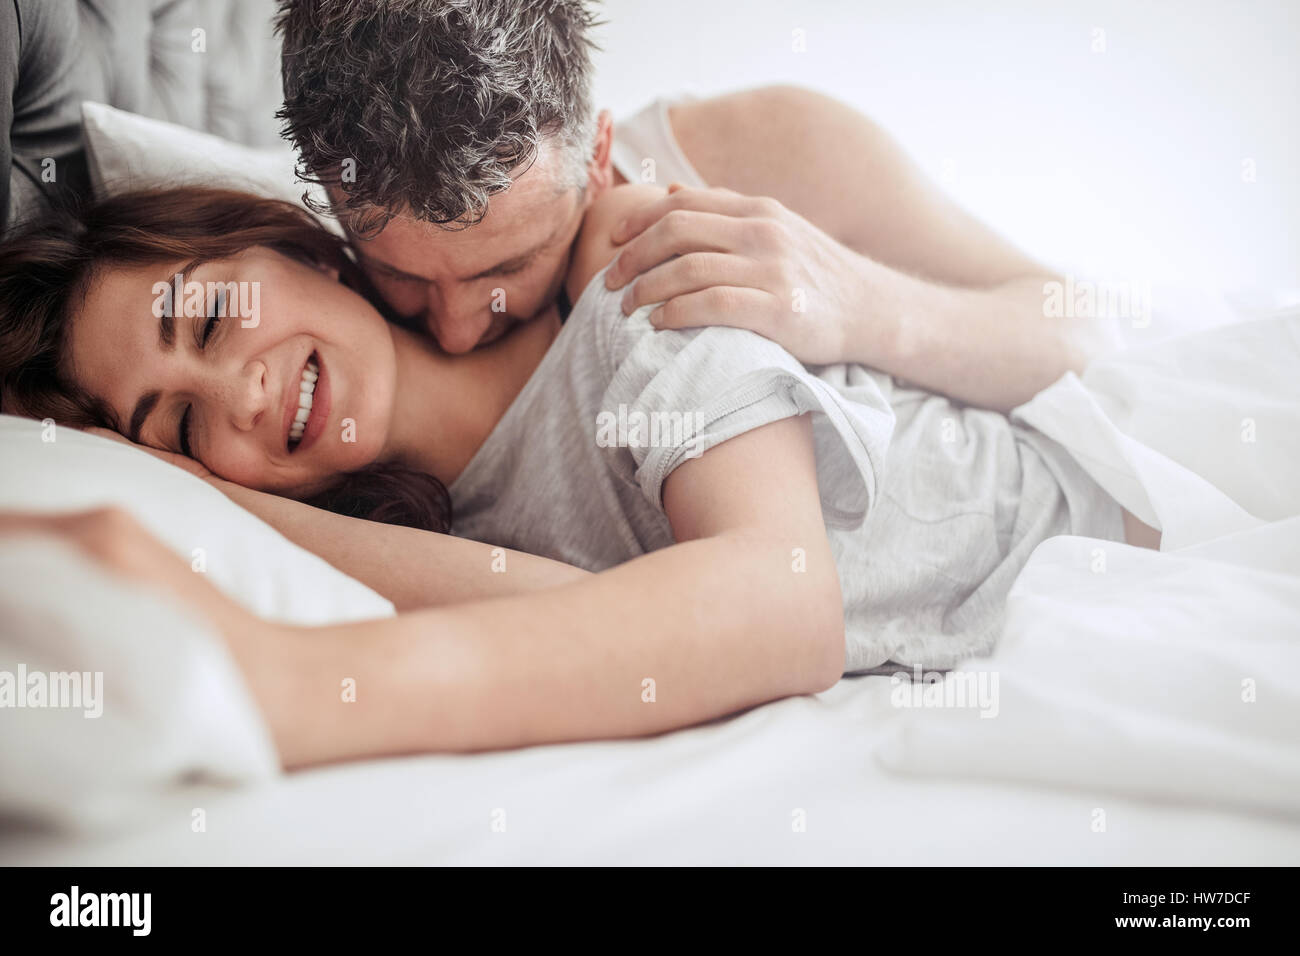 Wonderful Beautiful Passionate Couple Waking Up In Bed. Man Kissing On Neck Of Woman,  Both Lying On Bed